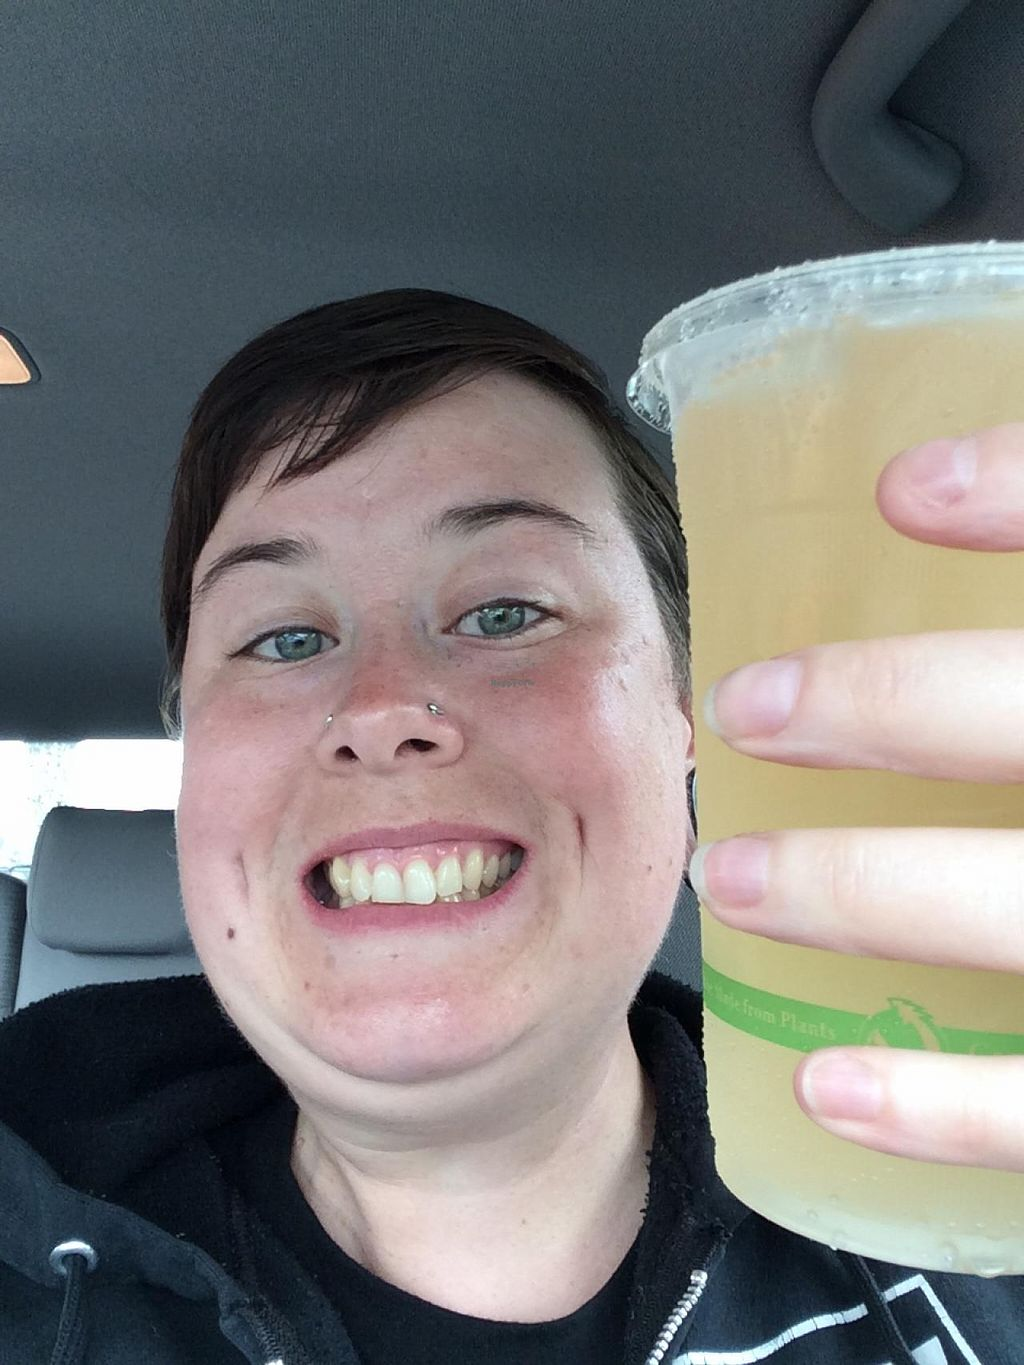 """Photo of Maui Kombucha  by <a href=""""/members/profile/Posi%20Britt"""">Posi Britt</a> <br/>One last stop before I leave. Temple Mandarin Orange flavour. Yes! <br/> April 26, 2015  - <a href='/contact/abuse/image/27733/100383'>Report</a>"""